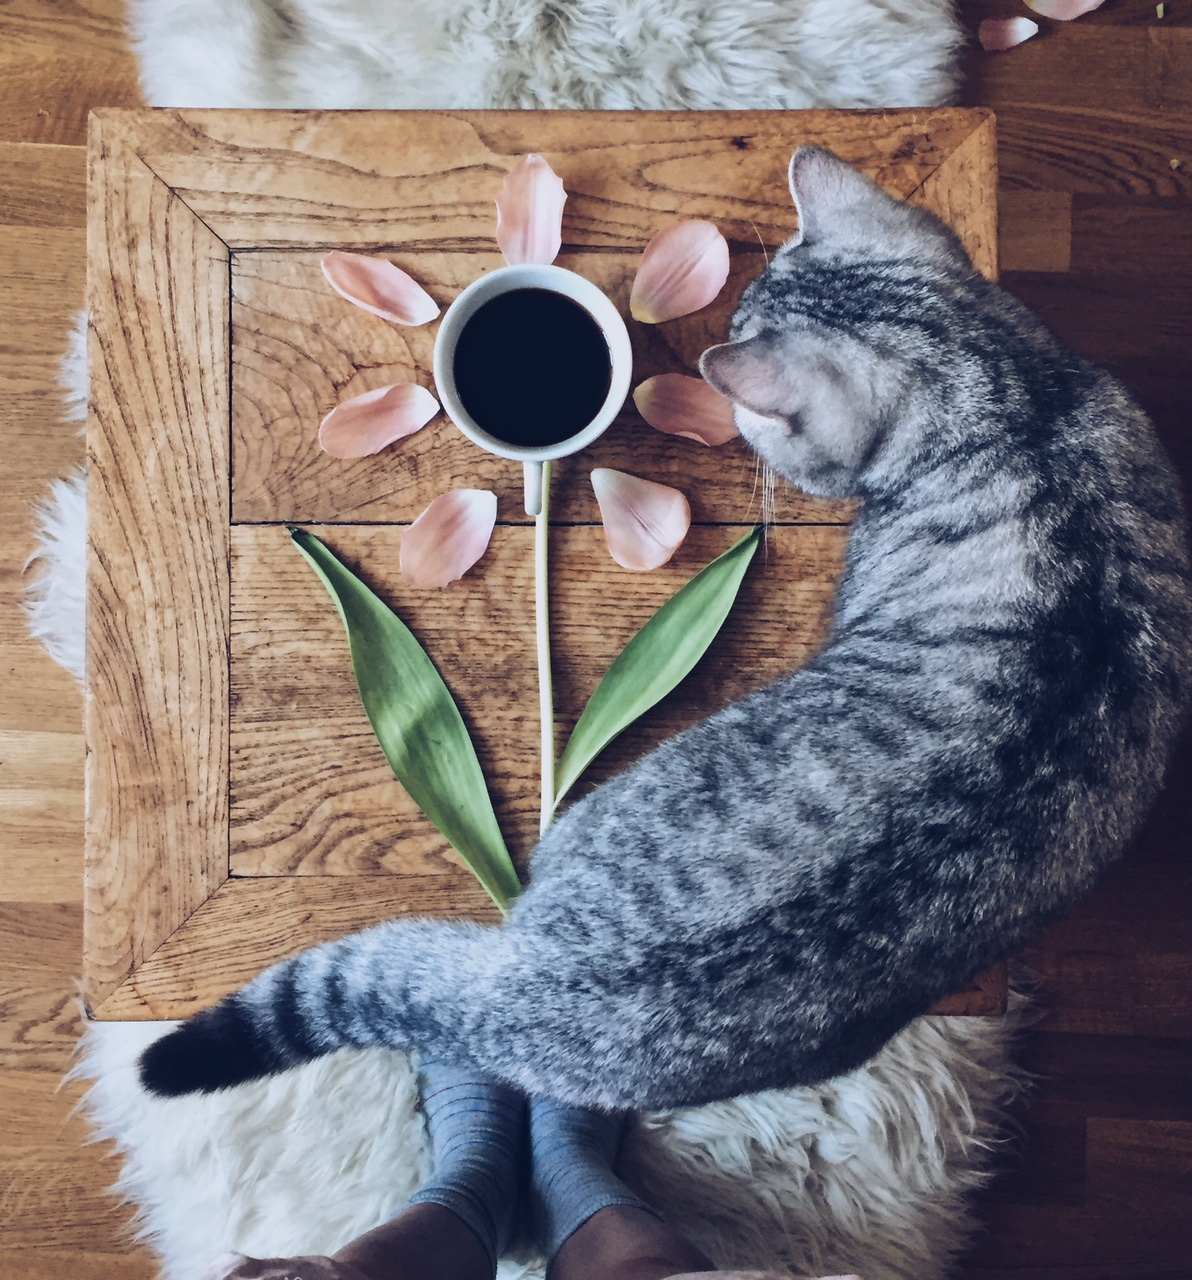 Cat walking around coffee cup and flowers